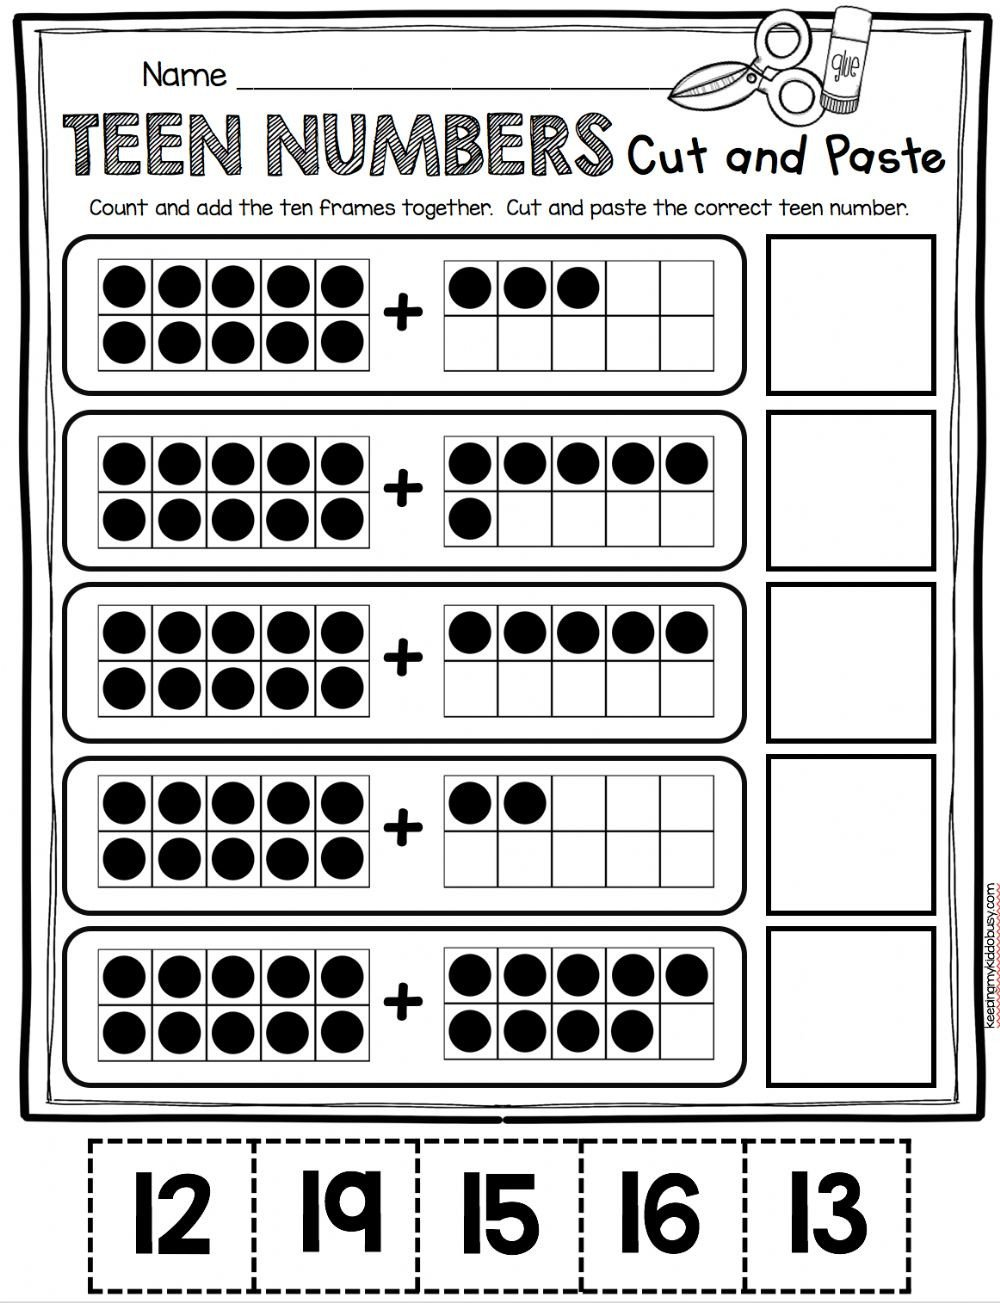 Ten Frame Worksheets Kindergarten Teen Number Cut and Paste Interactive Worksheet